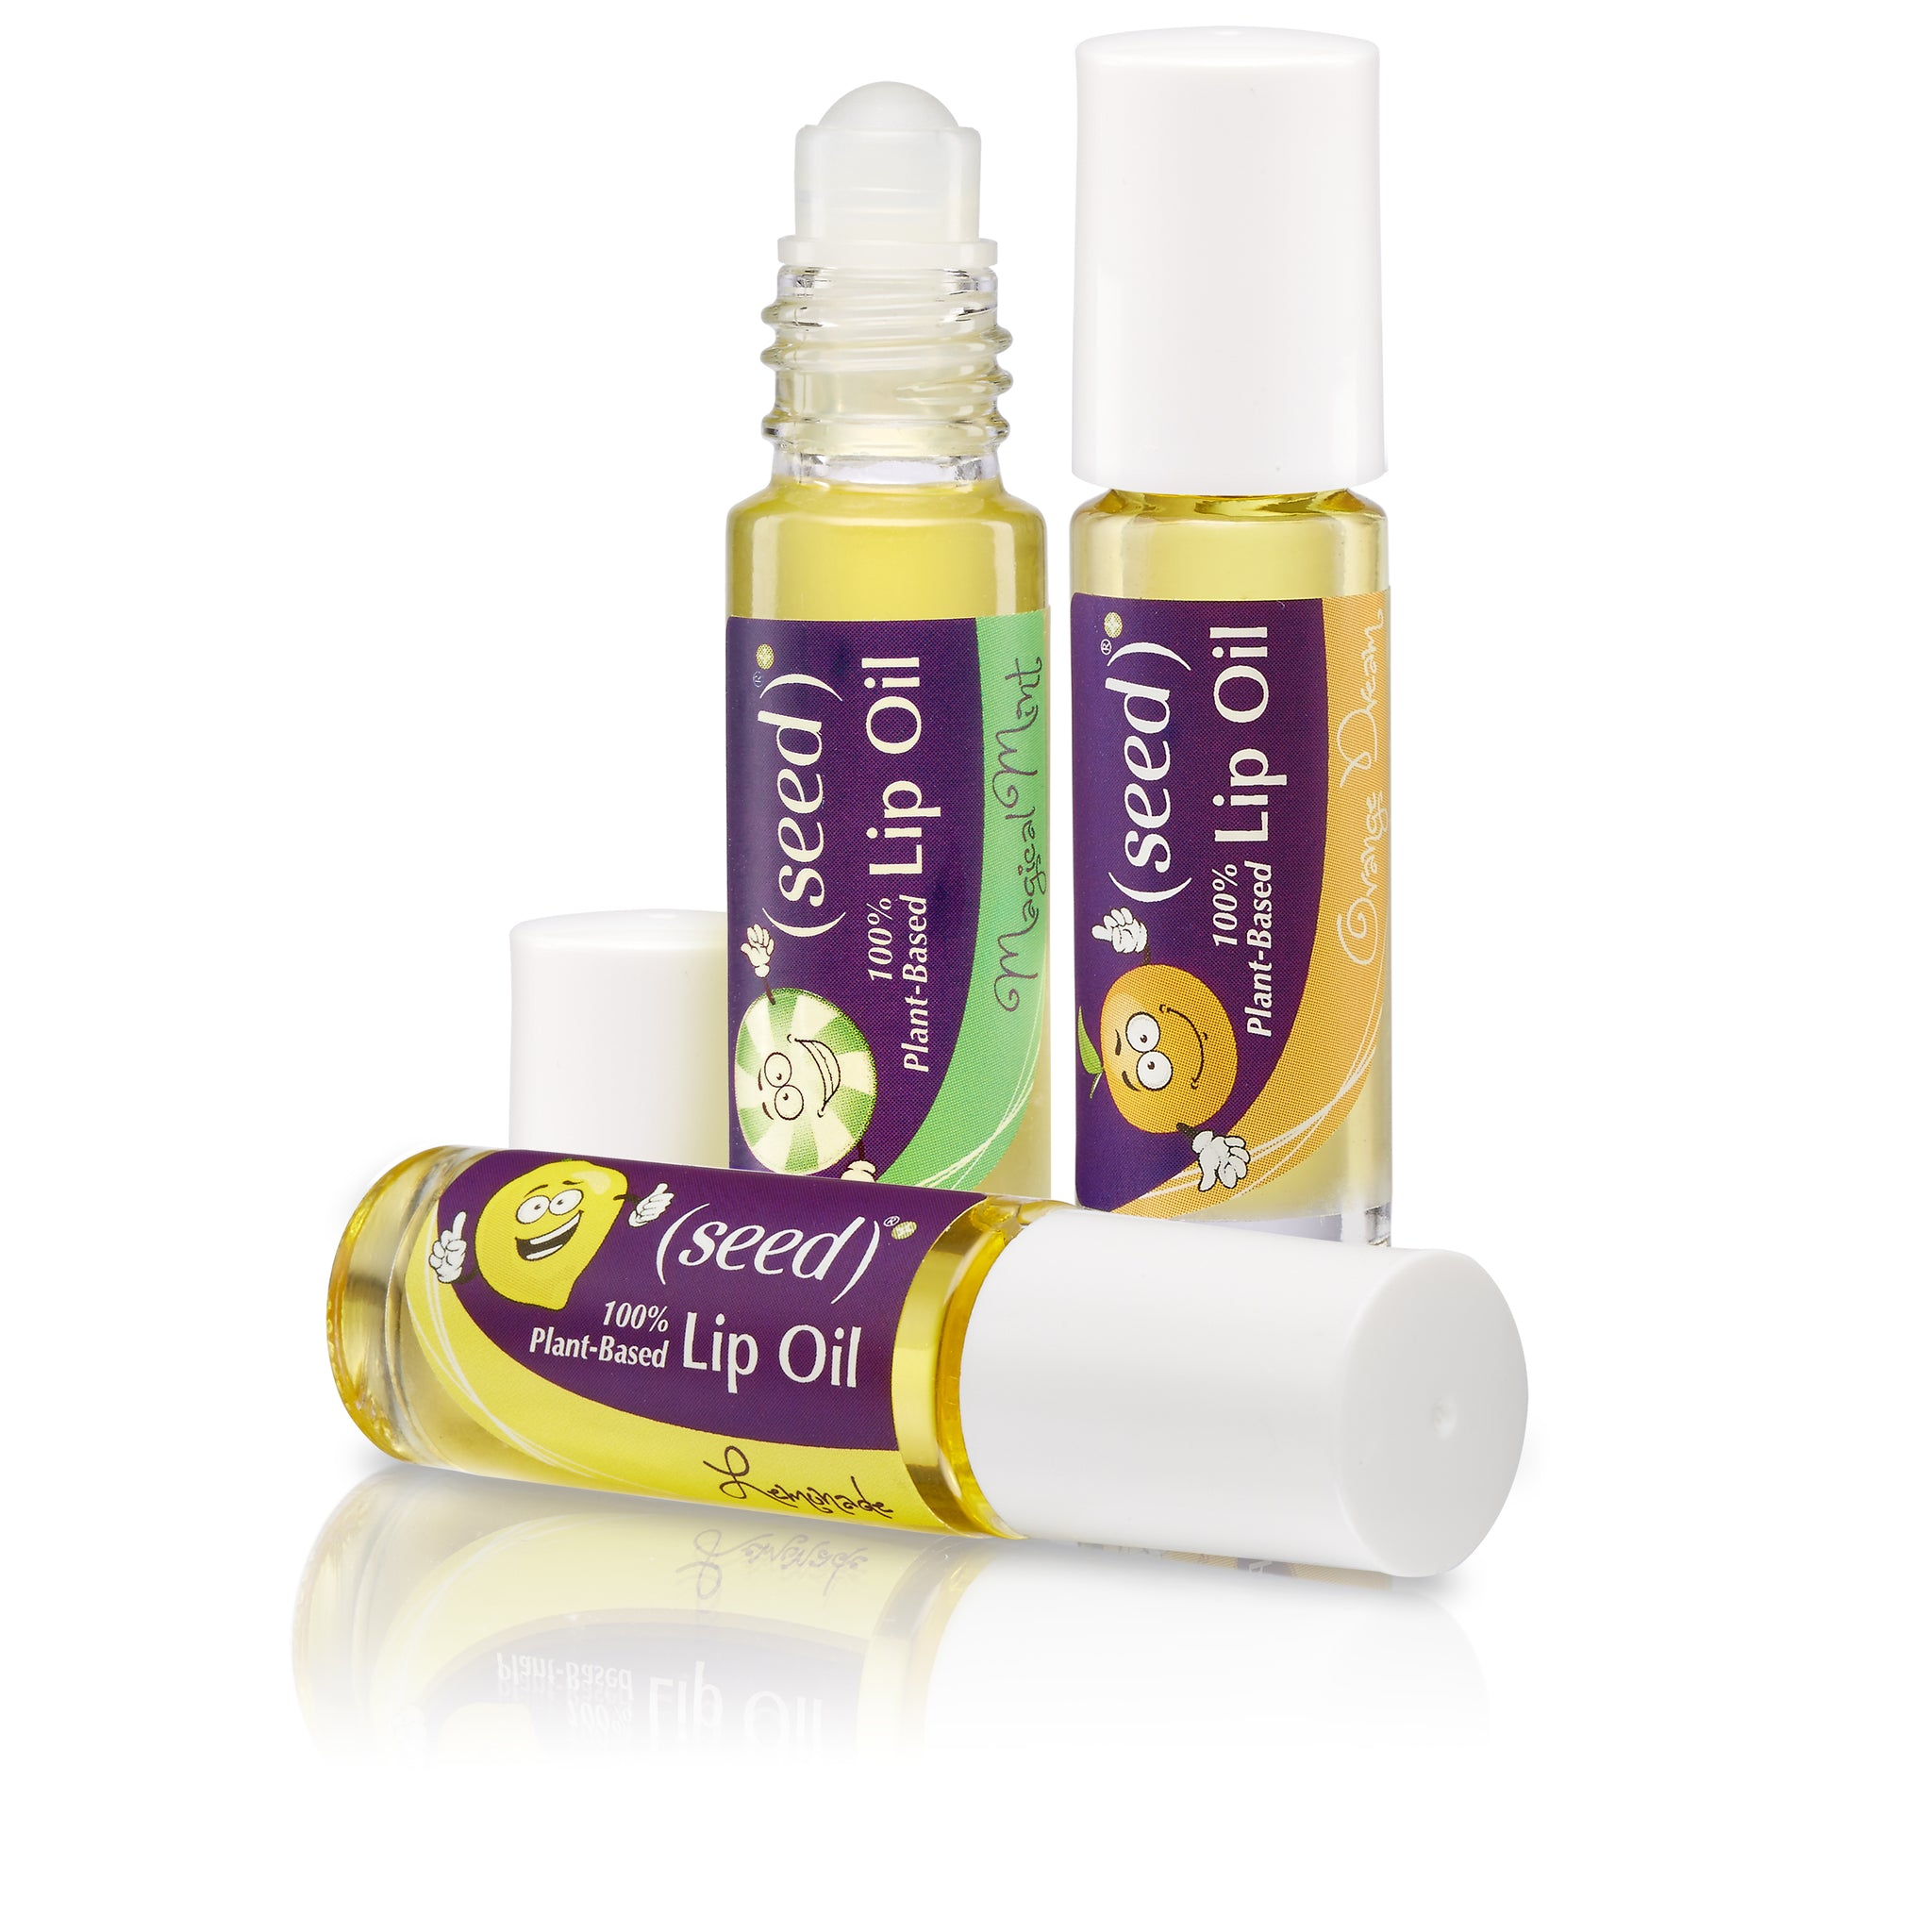 Seed Lip Oils for Kids - Orange Dream, Lemonade, and Magical Mint